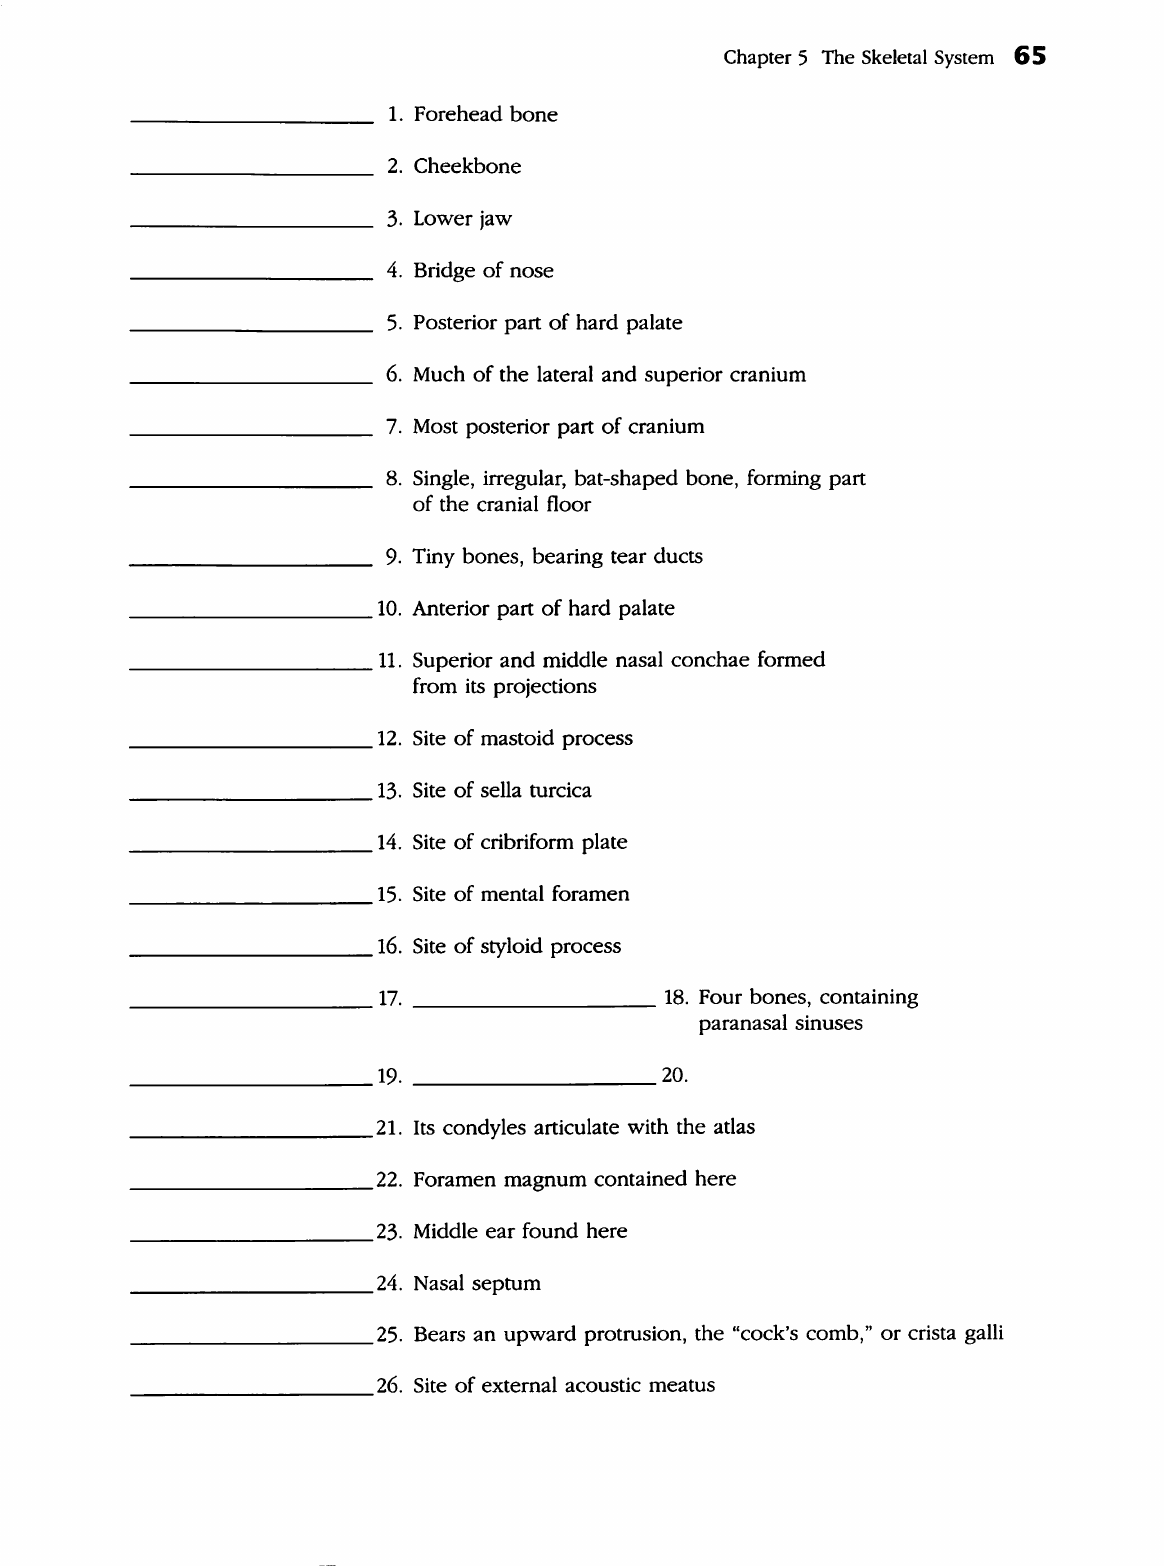 Anatomy And Physiology Coloring Workbook Answers Chapter